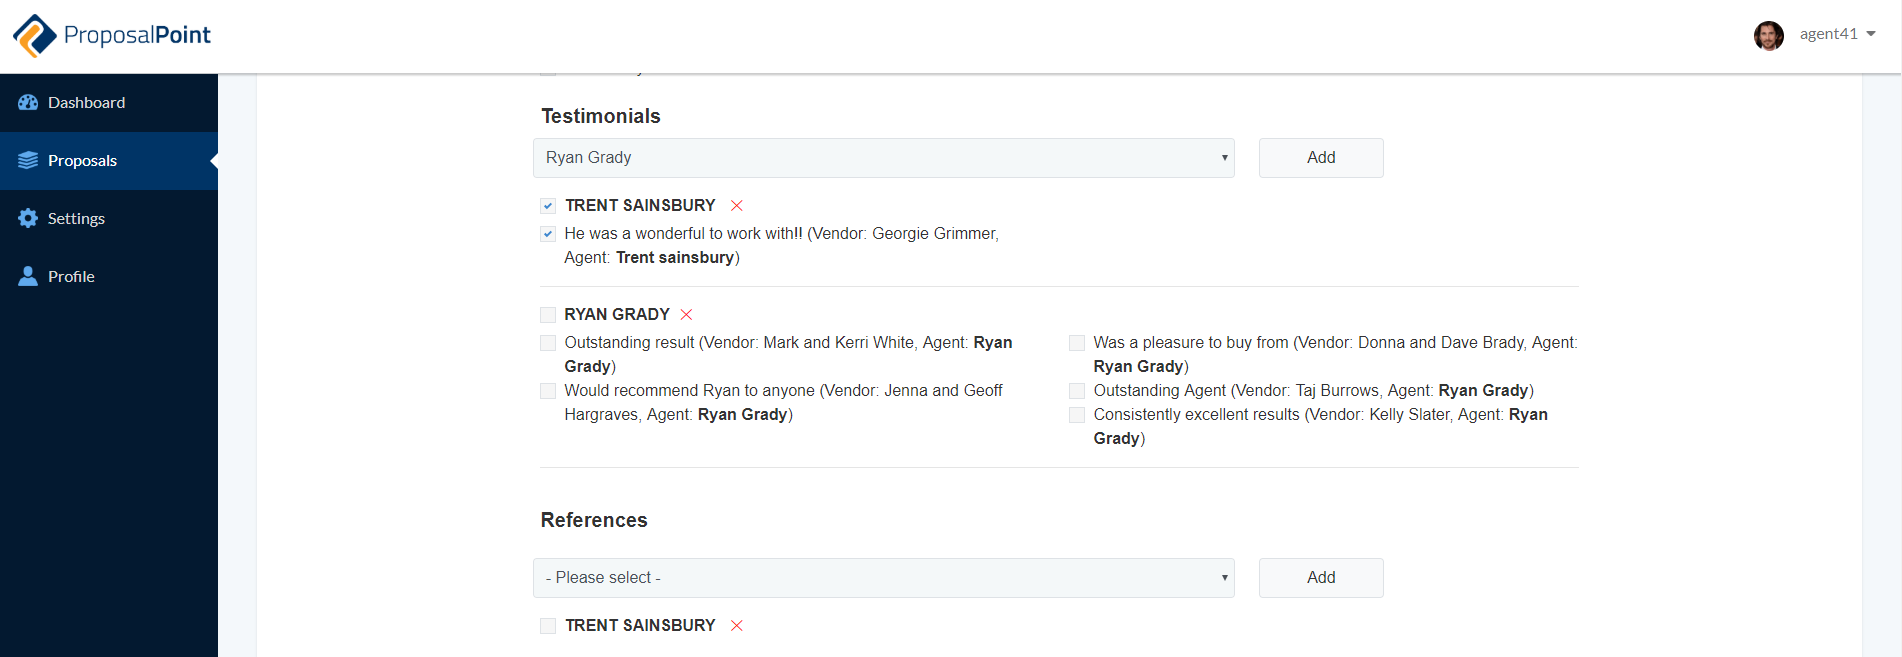 New Feature: Testimonials and References Search